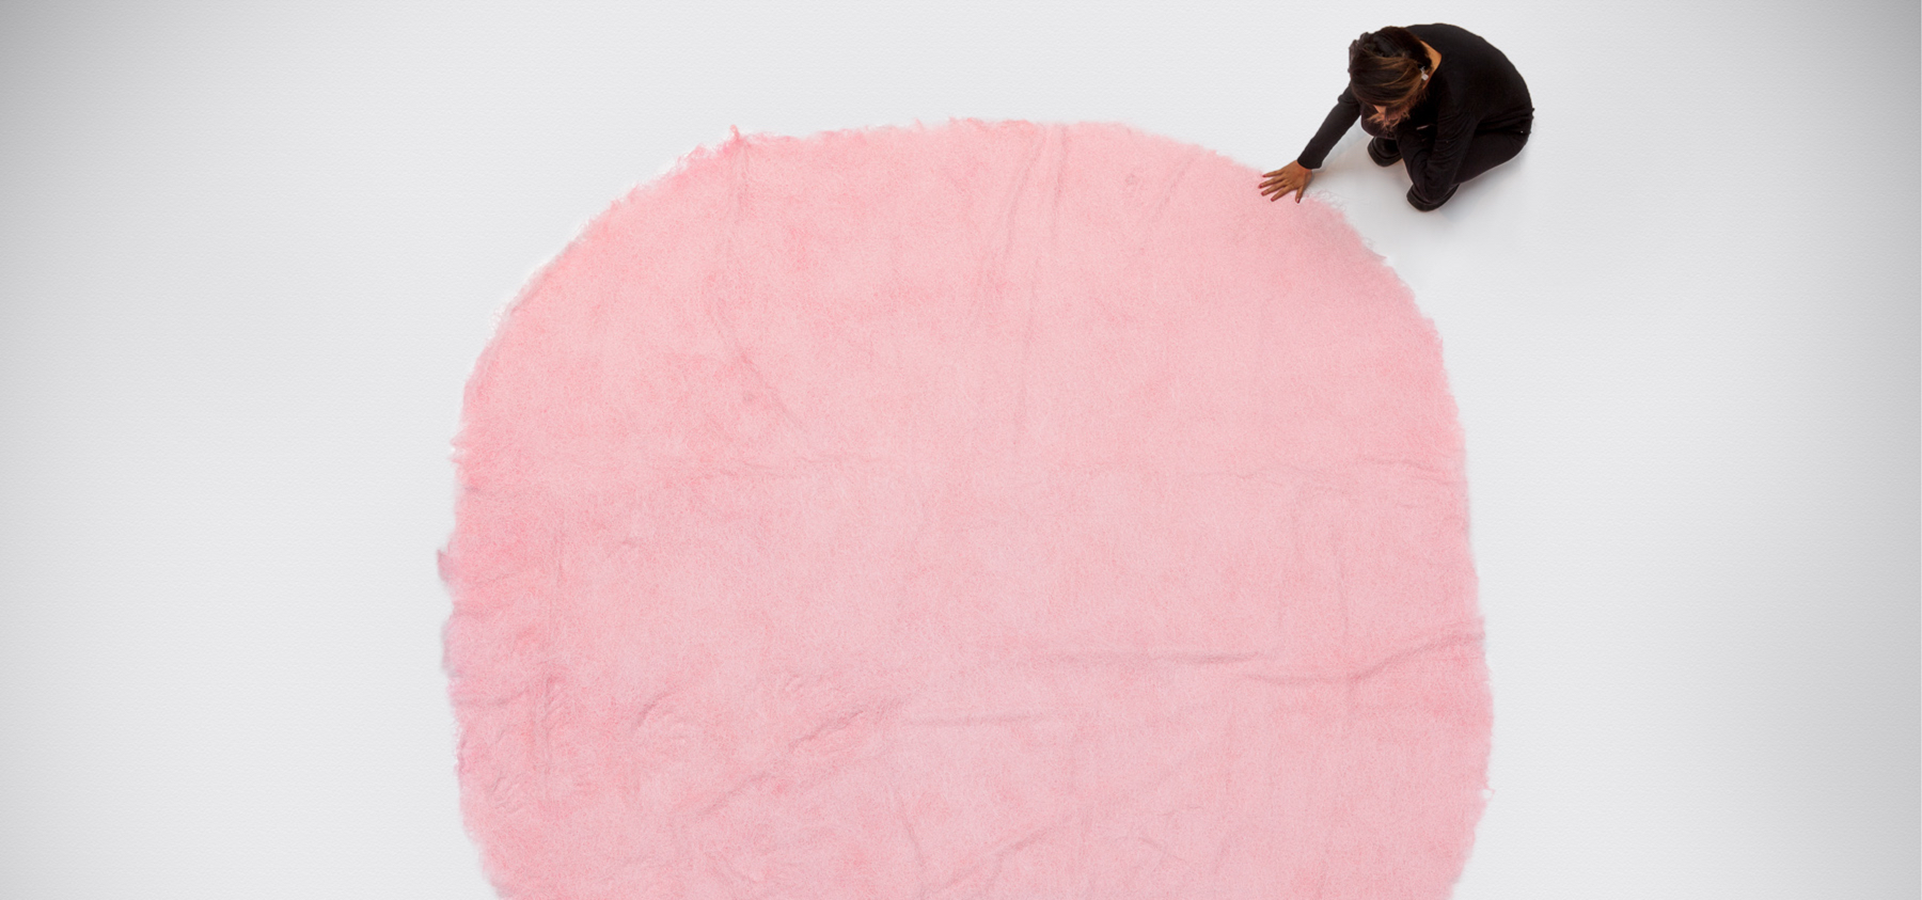 Overhead of a person touching a round pink knitted thread installation